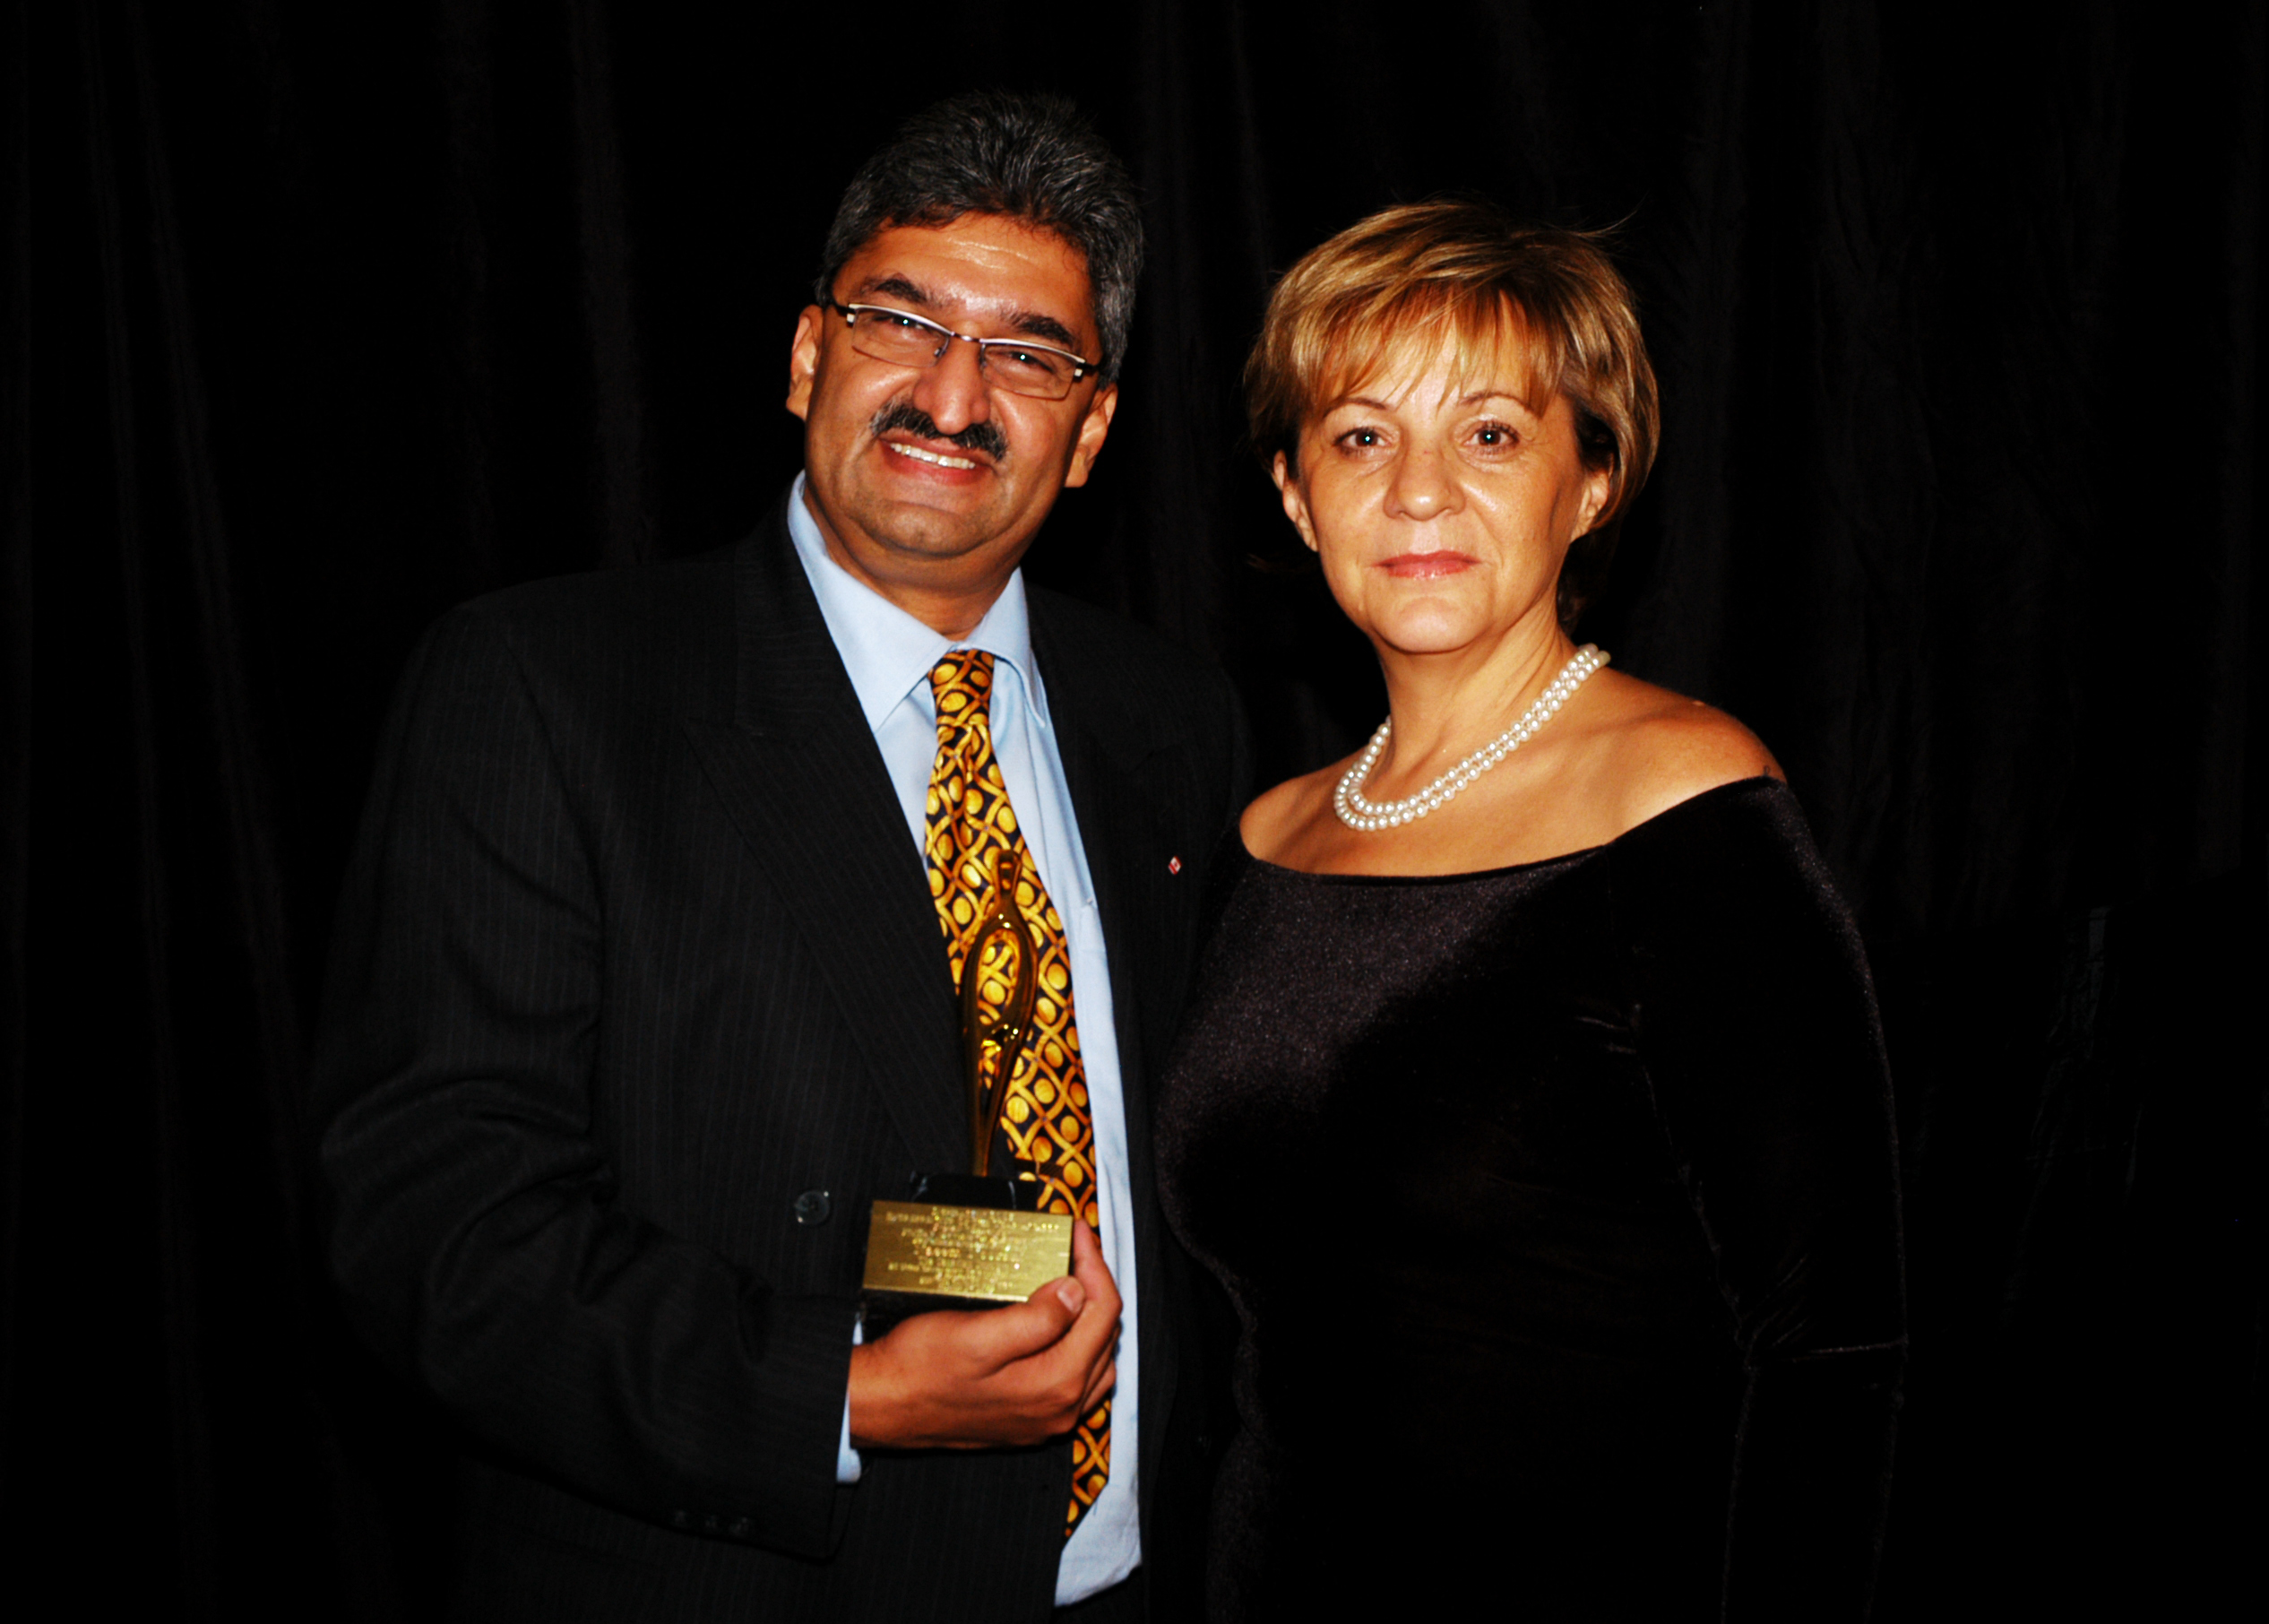 YMCA Entrepreneur of the Year 2004 with mentor coach Debbie Catherwood